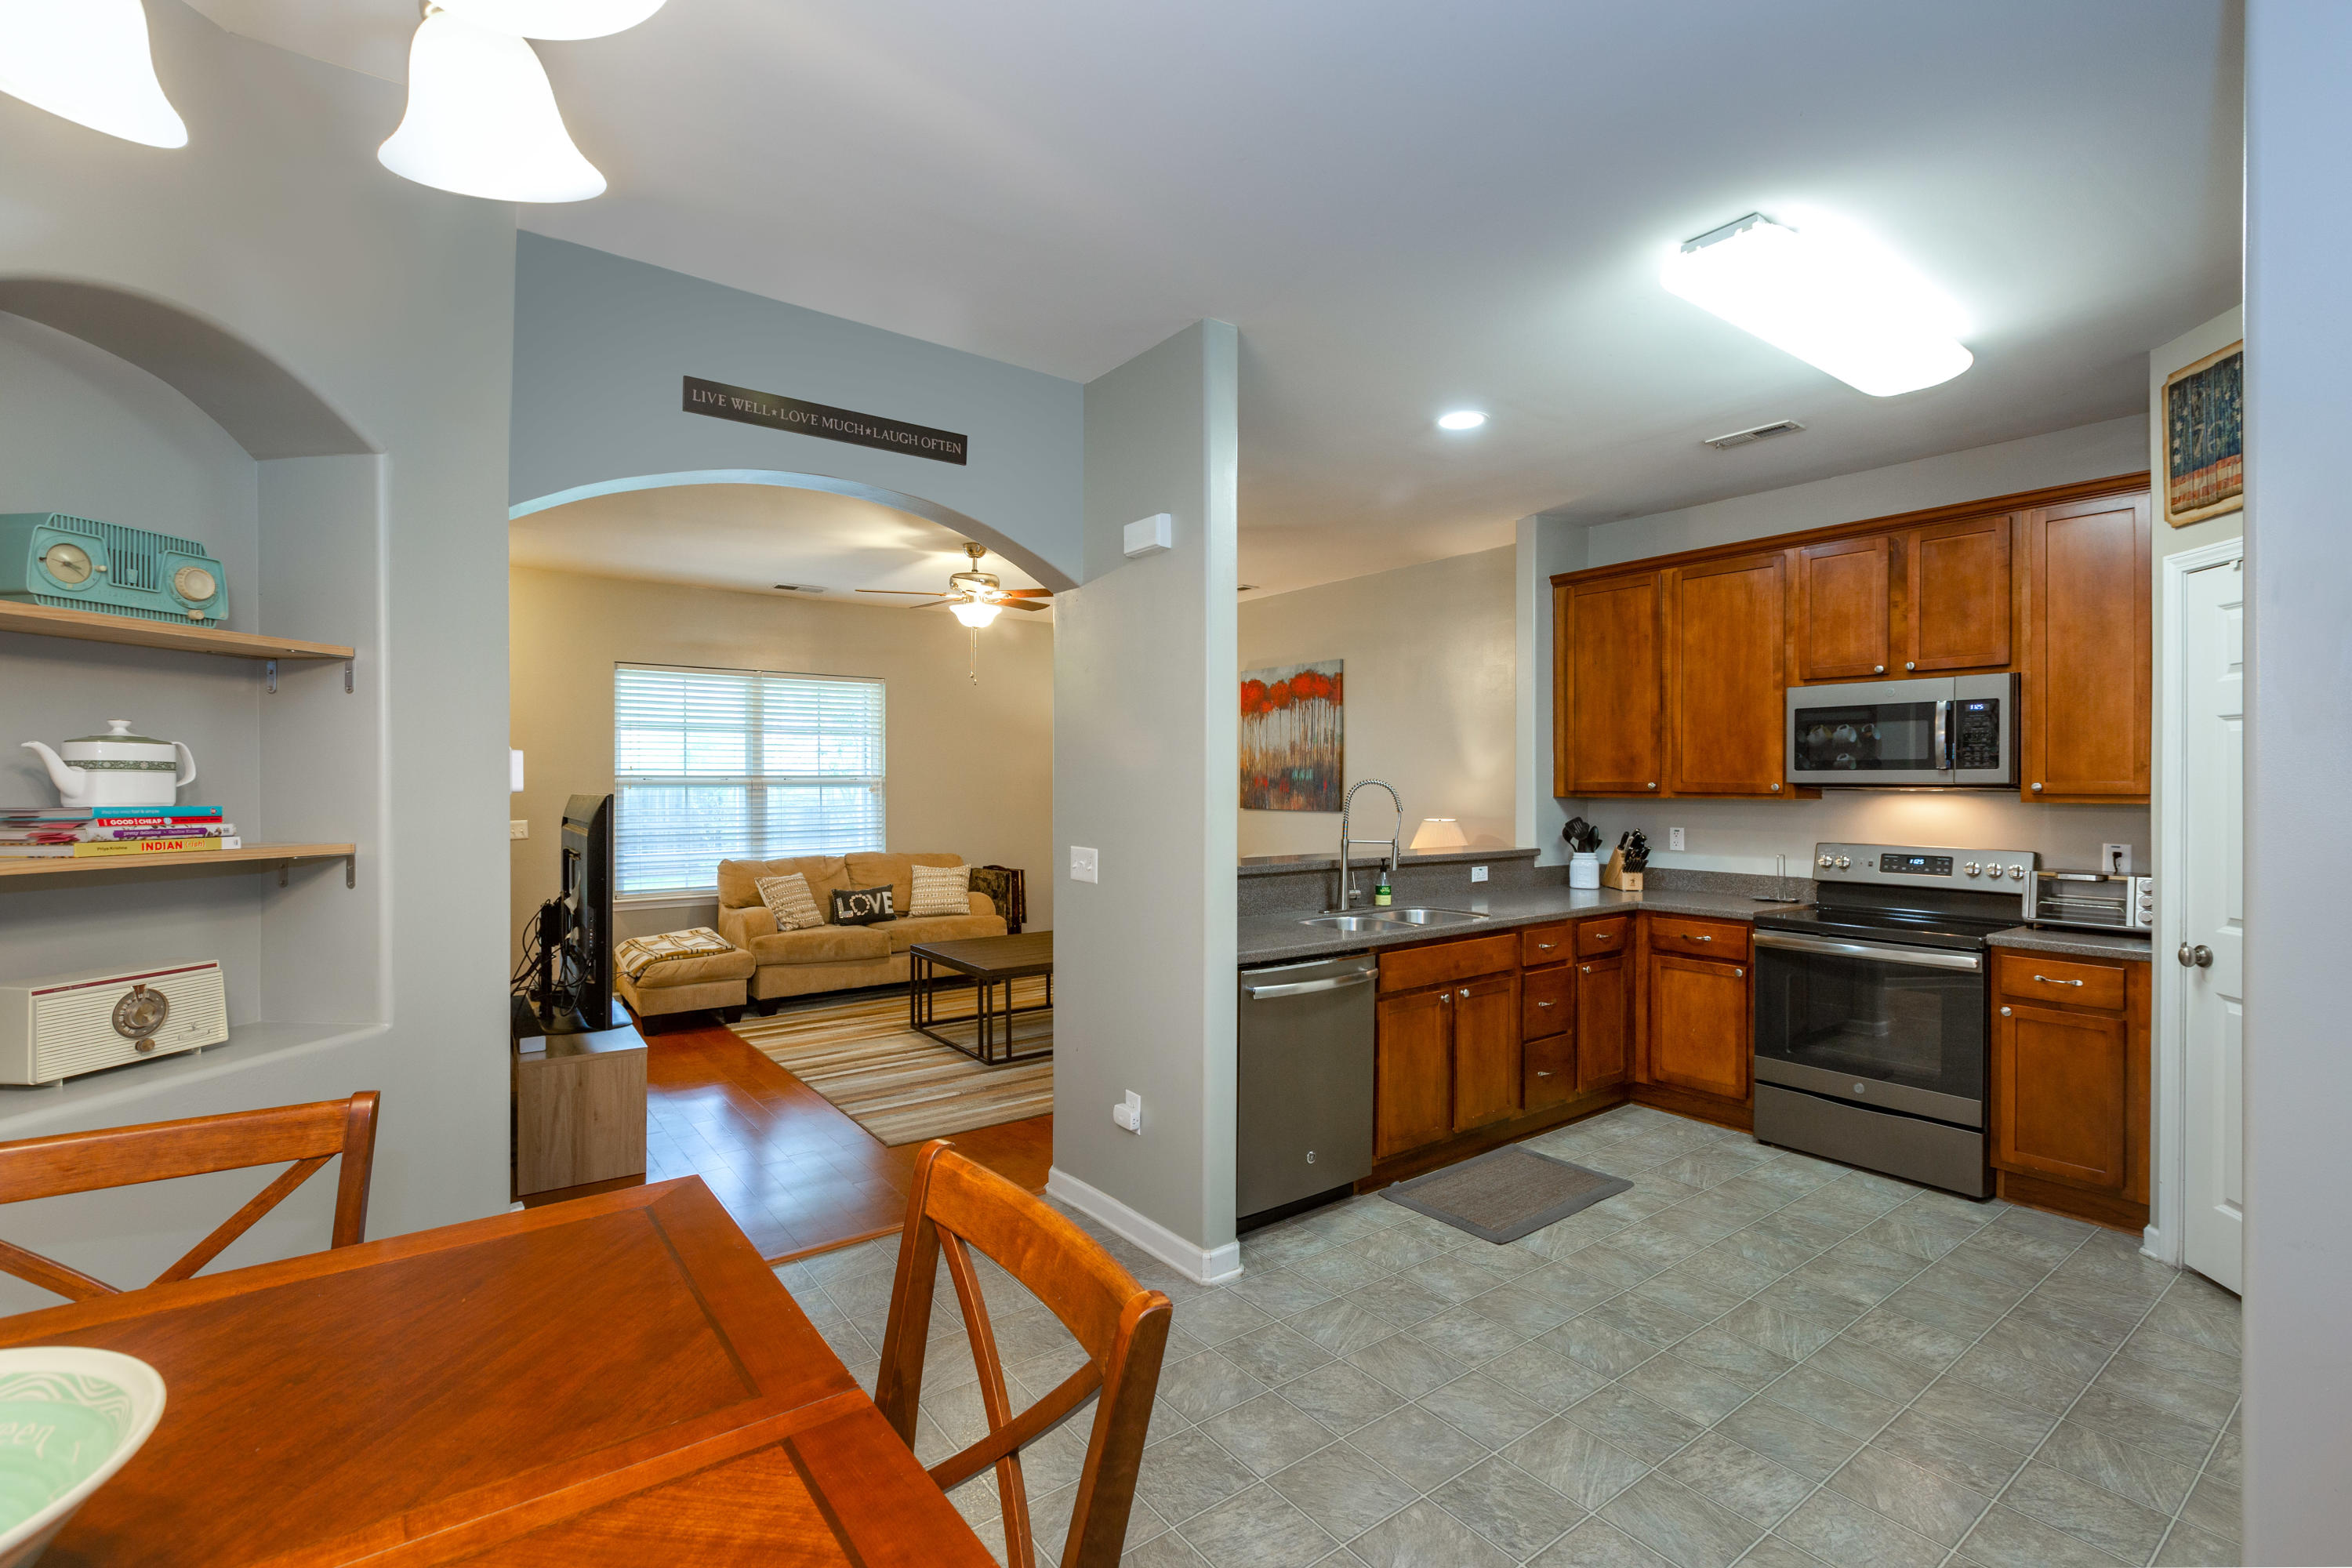 Berkeley Commons Townhomes Homes For Sale - 113 Lamplighter, Summerville, SC - 27